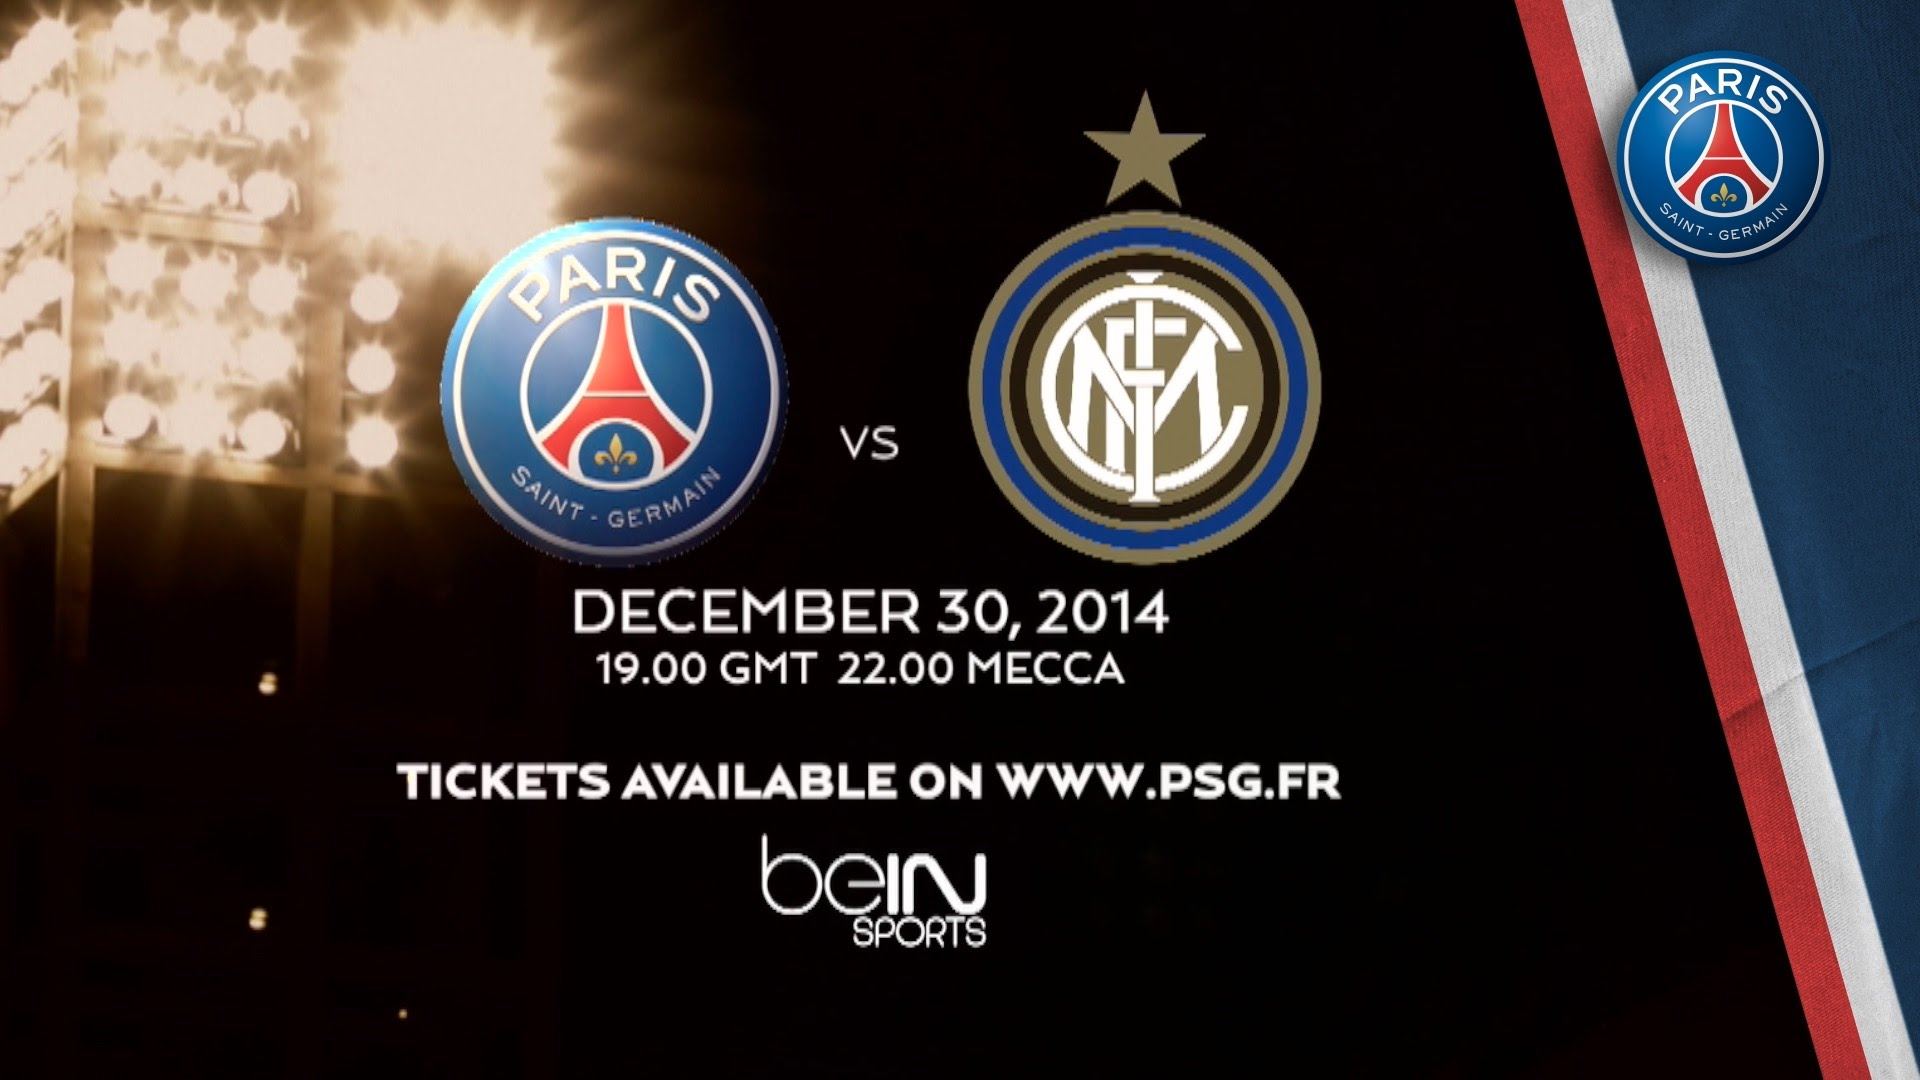 TRAILER PARIS vs INTER MILAN